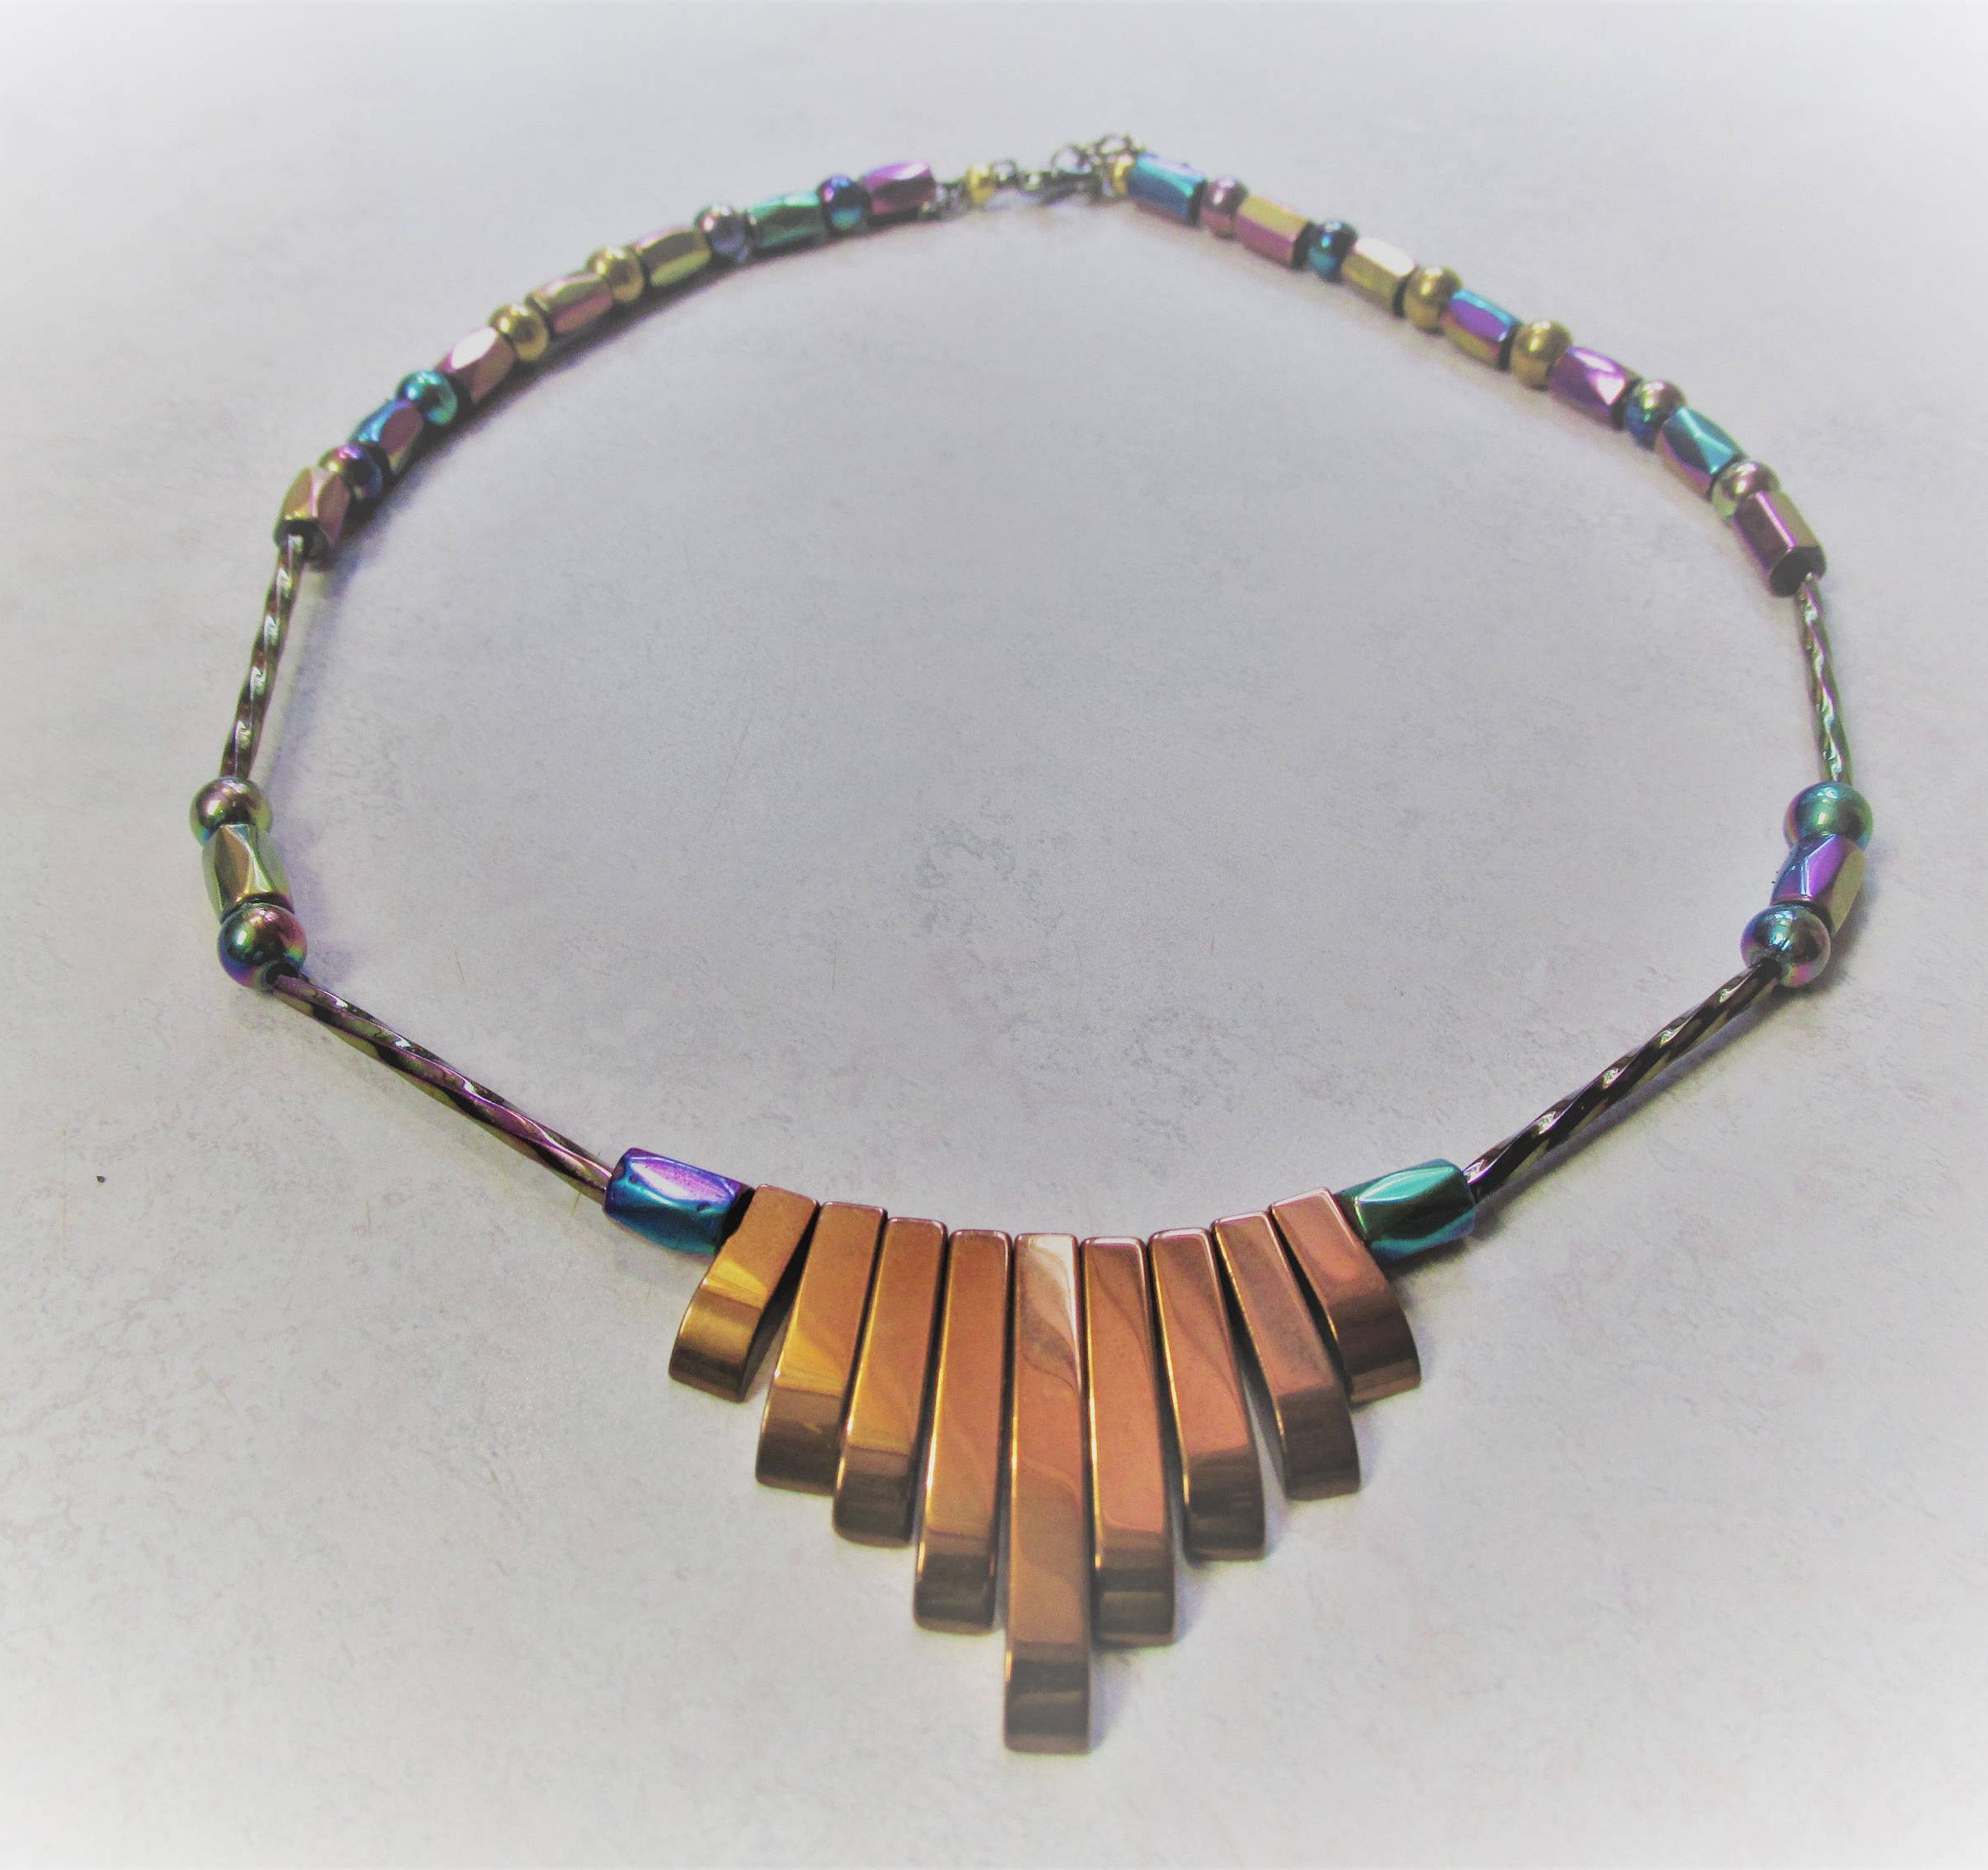 on hematite by pin etsy rainbow copper jewellery necklace magnetic colored jewelry rockyjewelrydesigns and